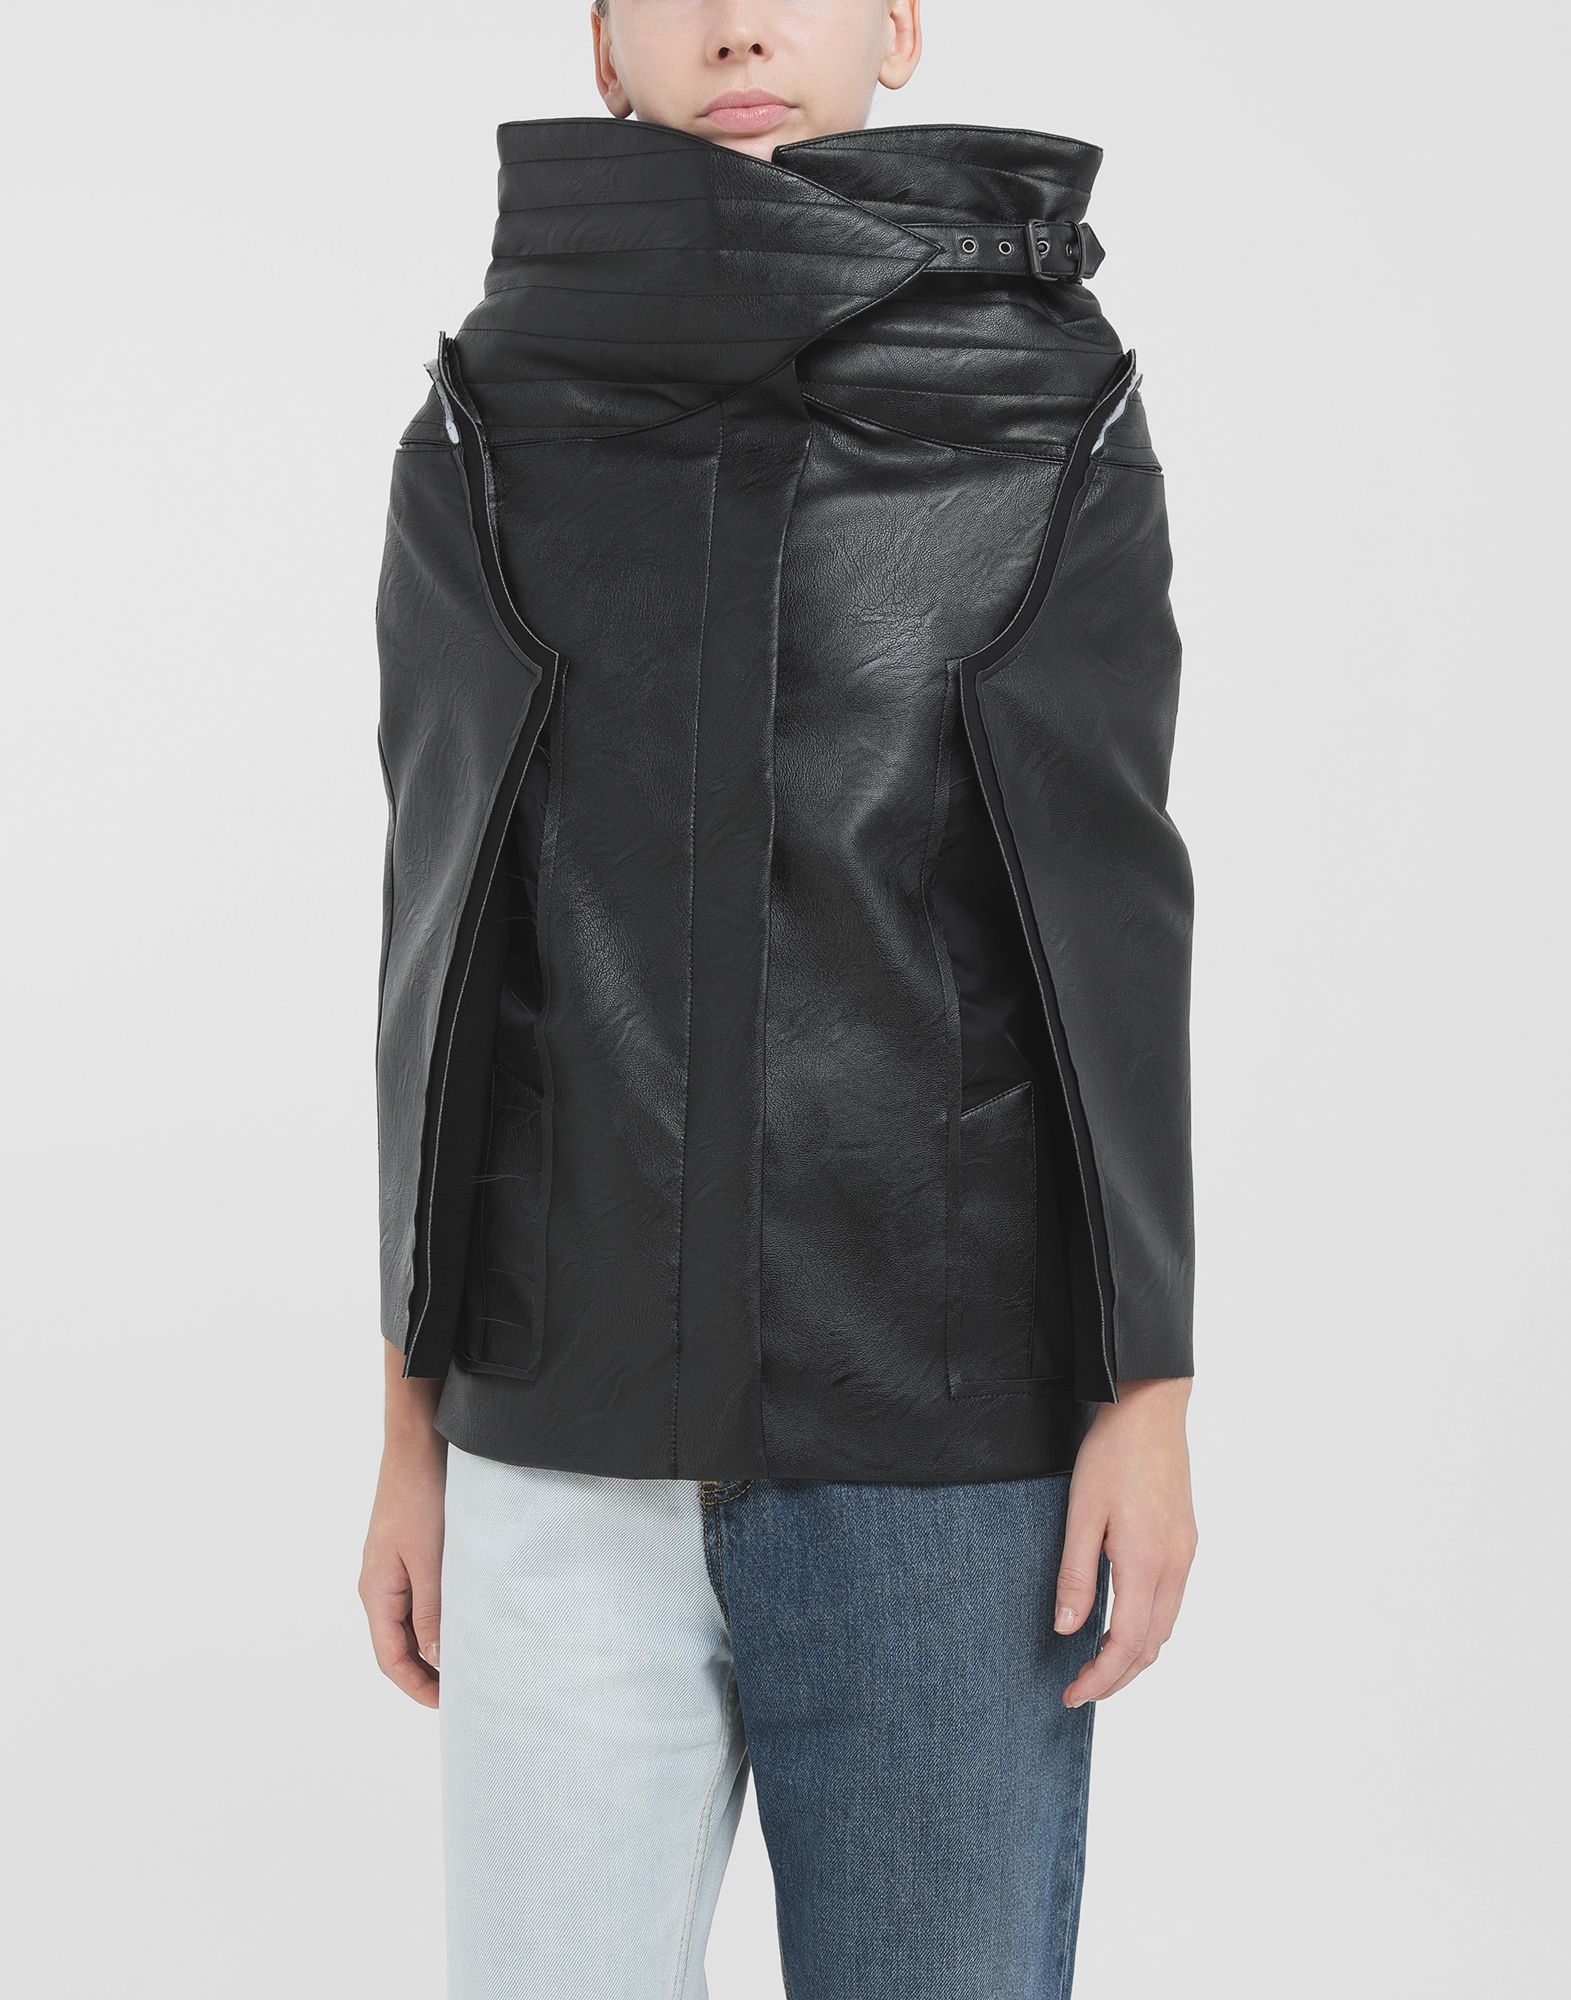 MAISON MARGIELA Décortiqué faux leather jacket Blazer Woman r